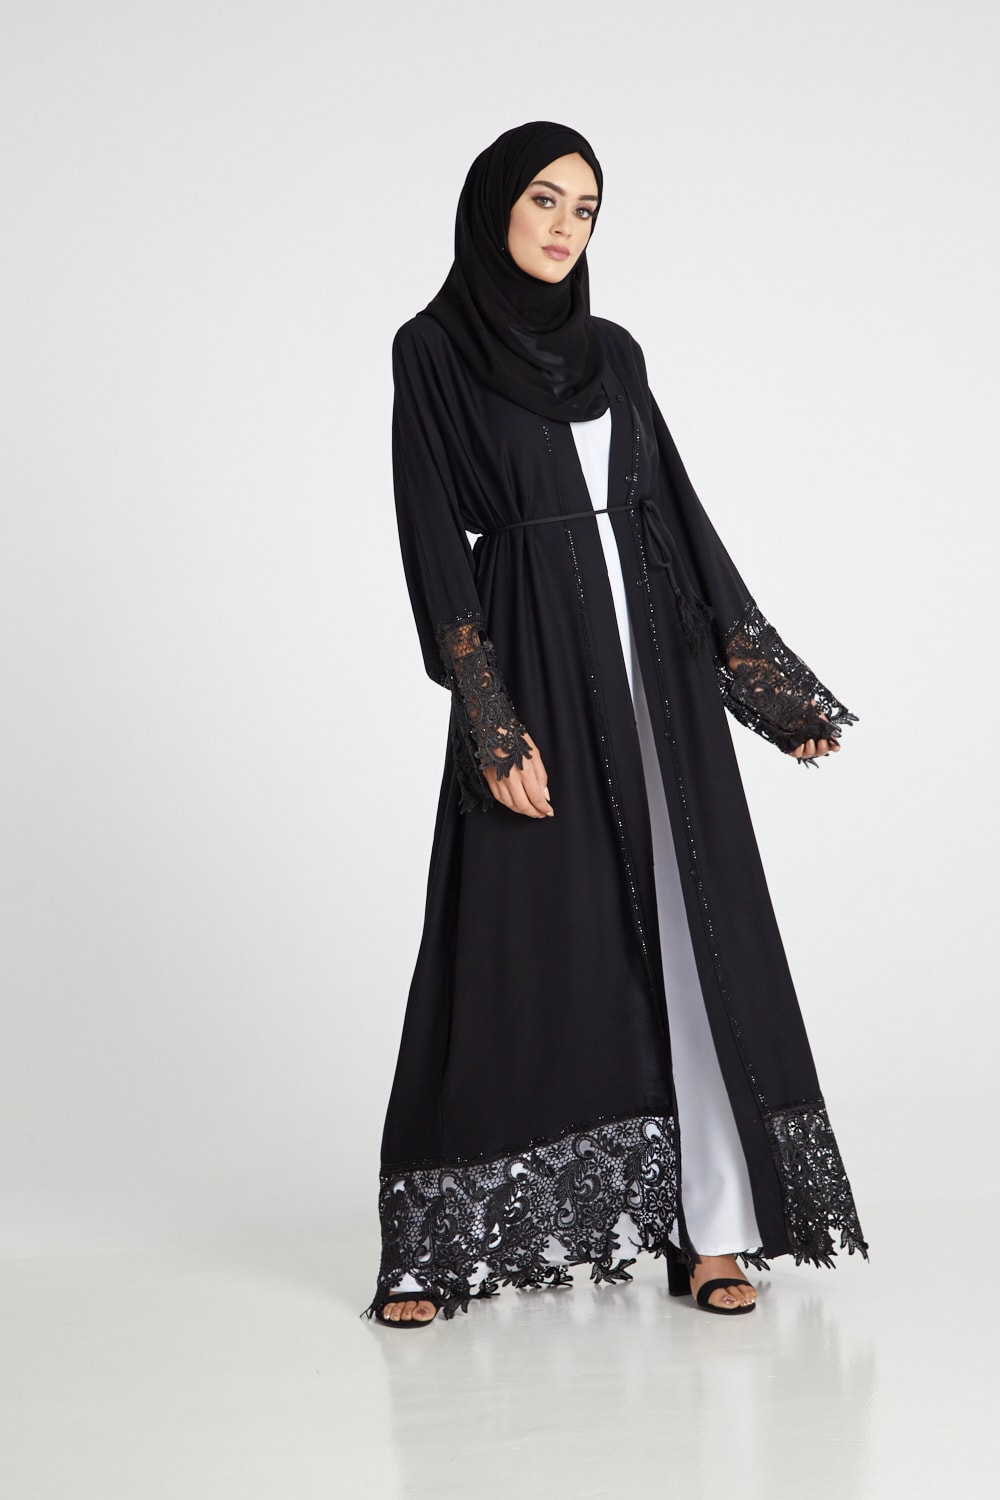 Desert Mirage Black Lace Open Abaya